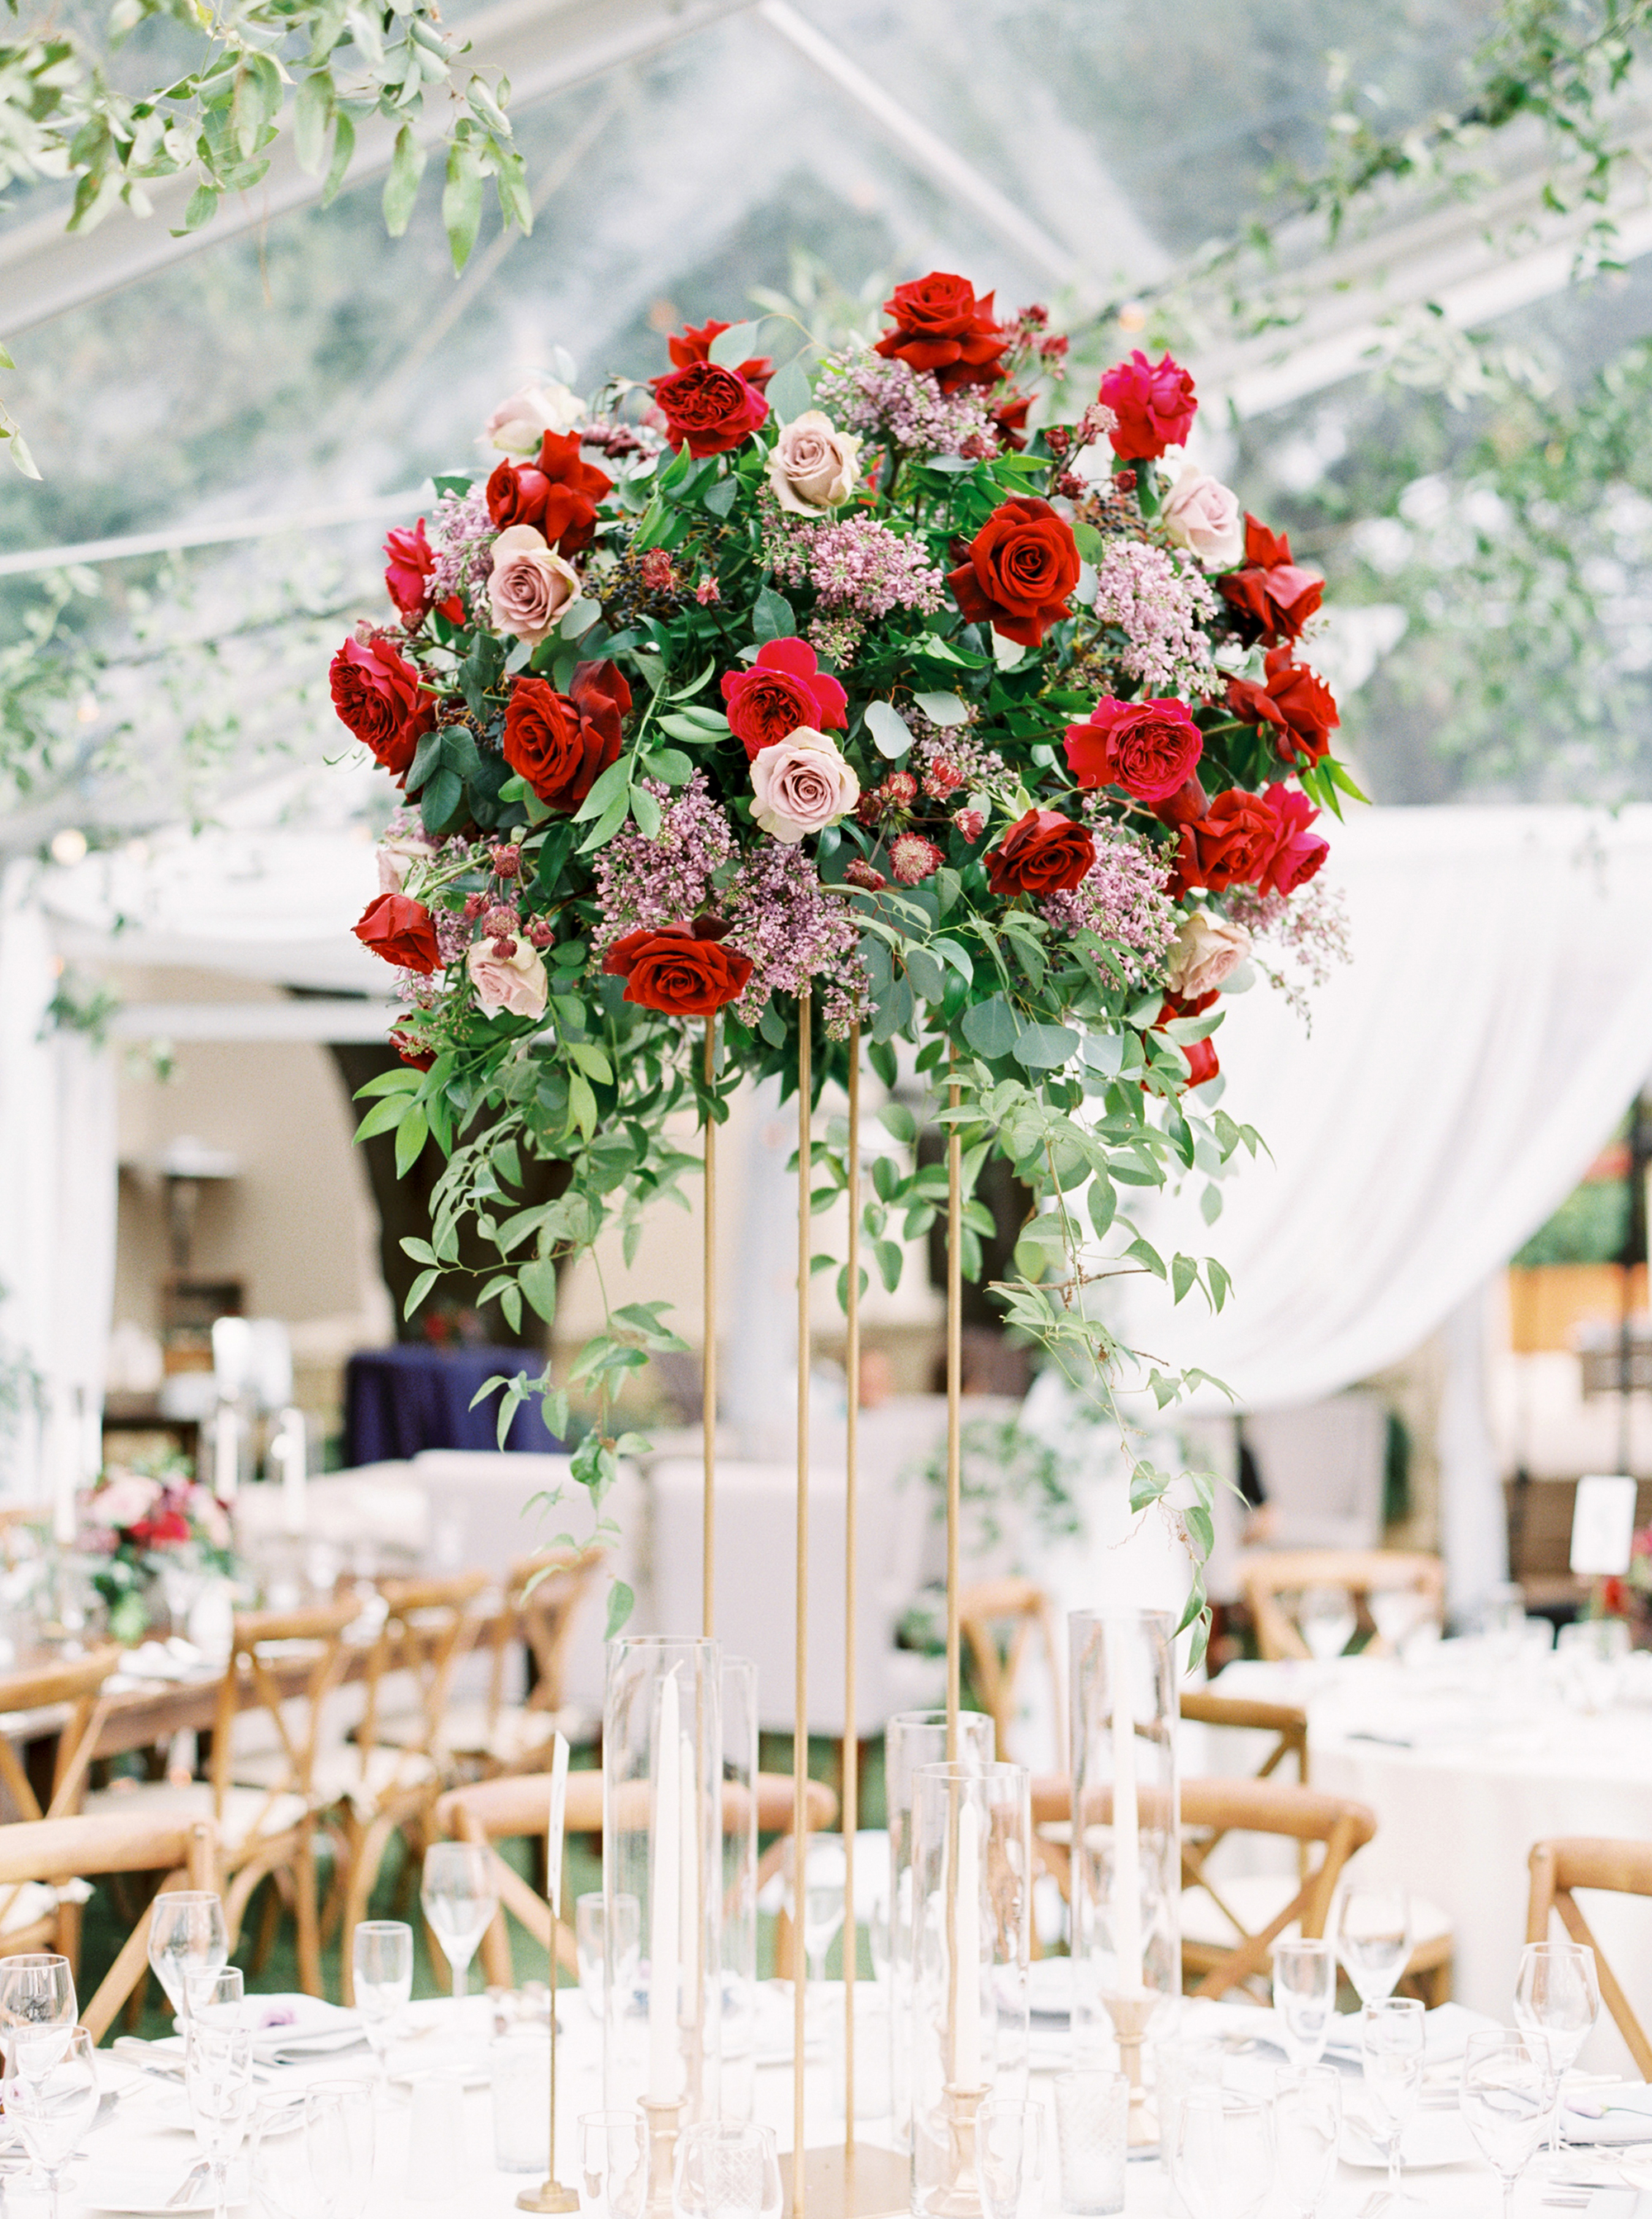 29 Tall Centerpieces That Will Take Your Reception Tables to New Heights